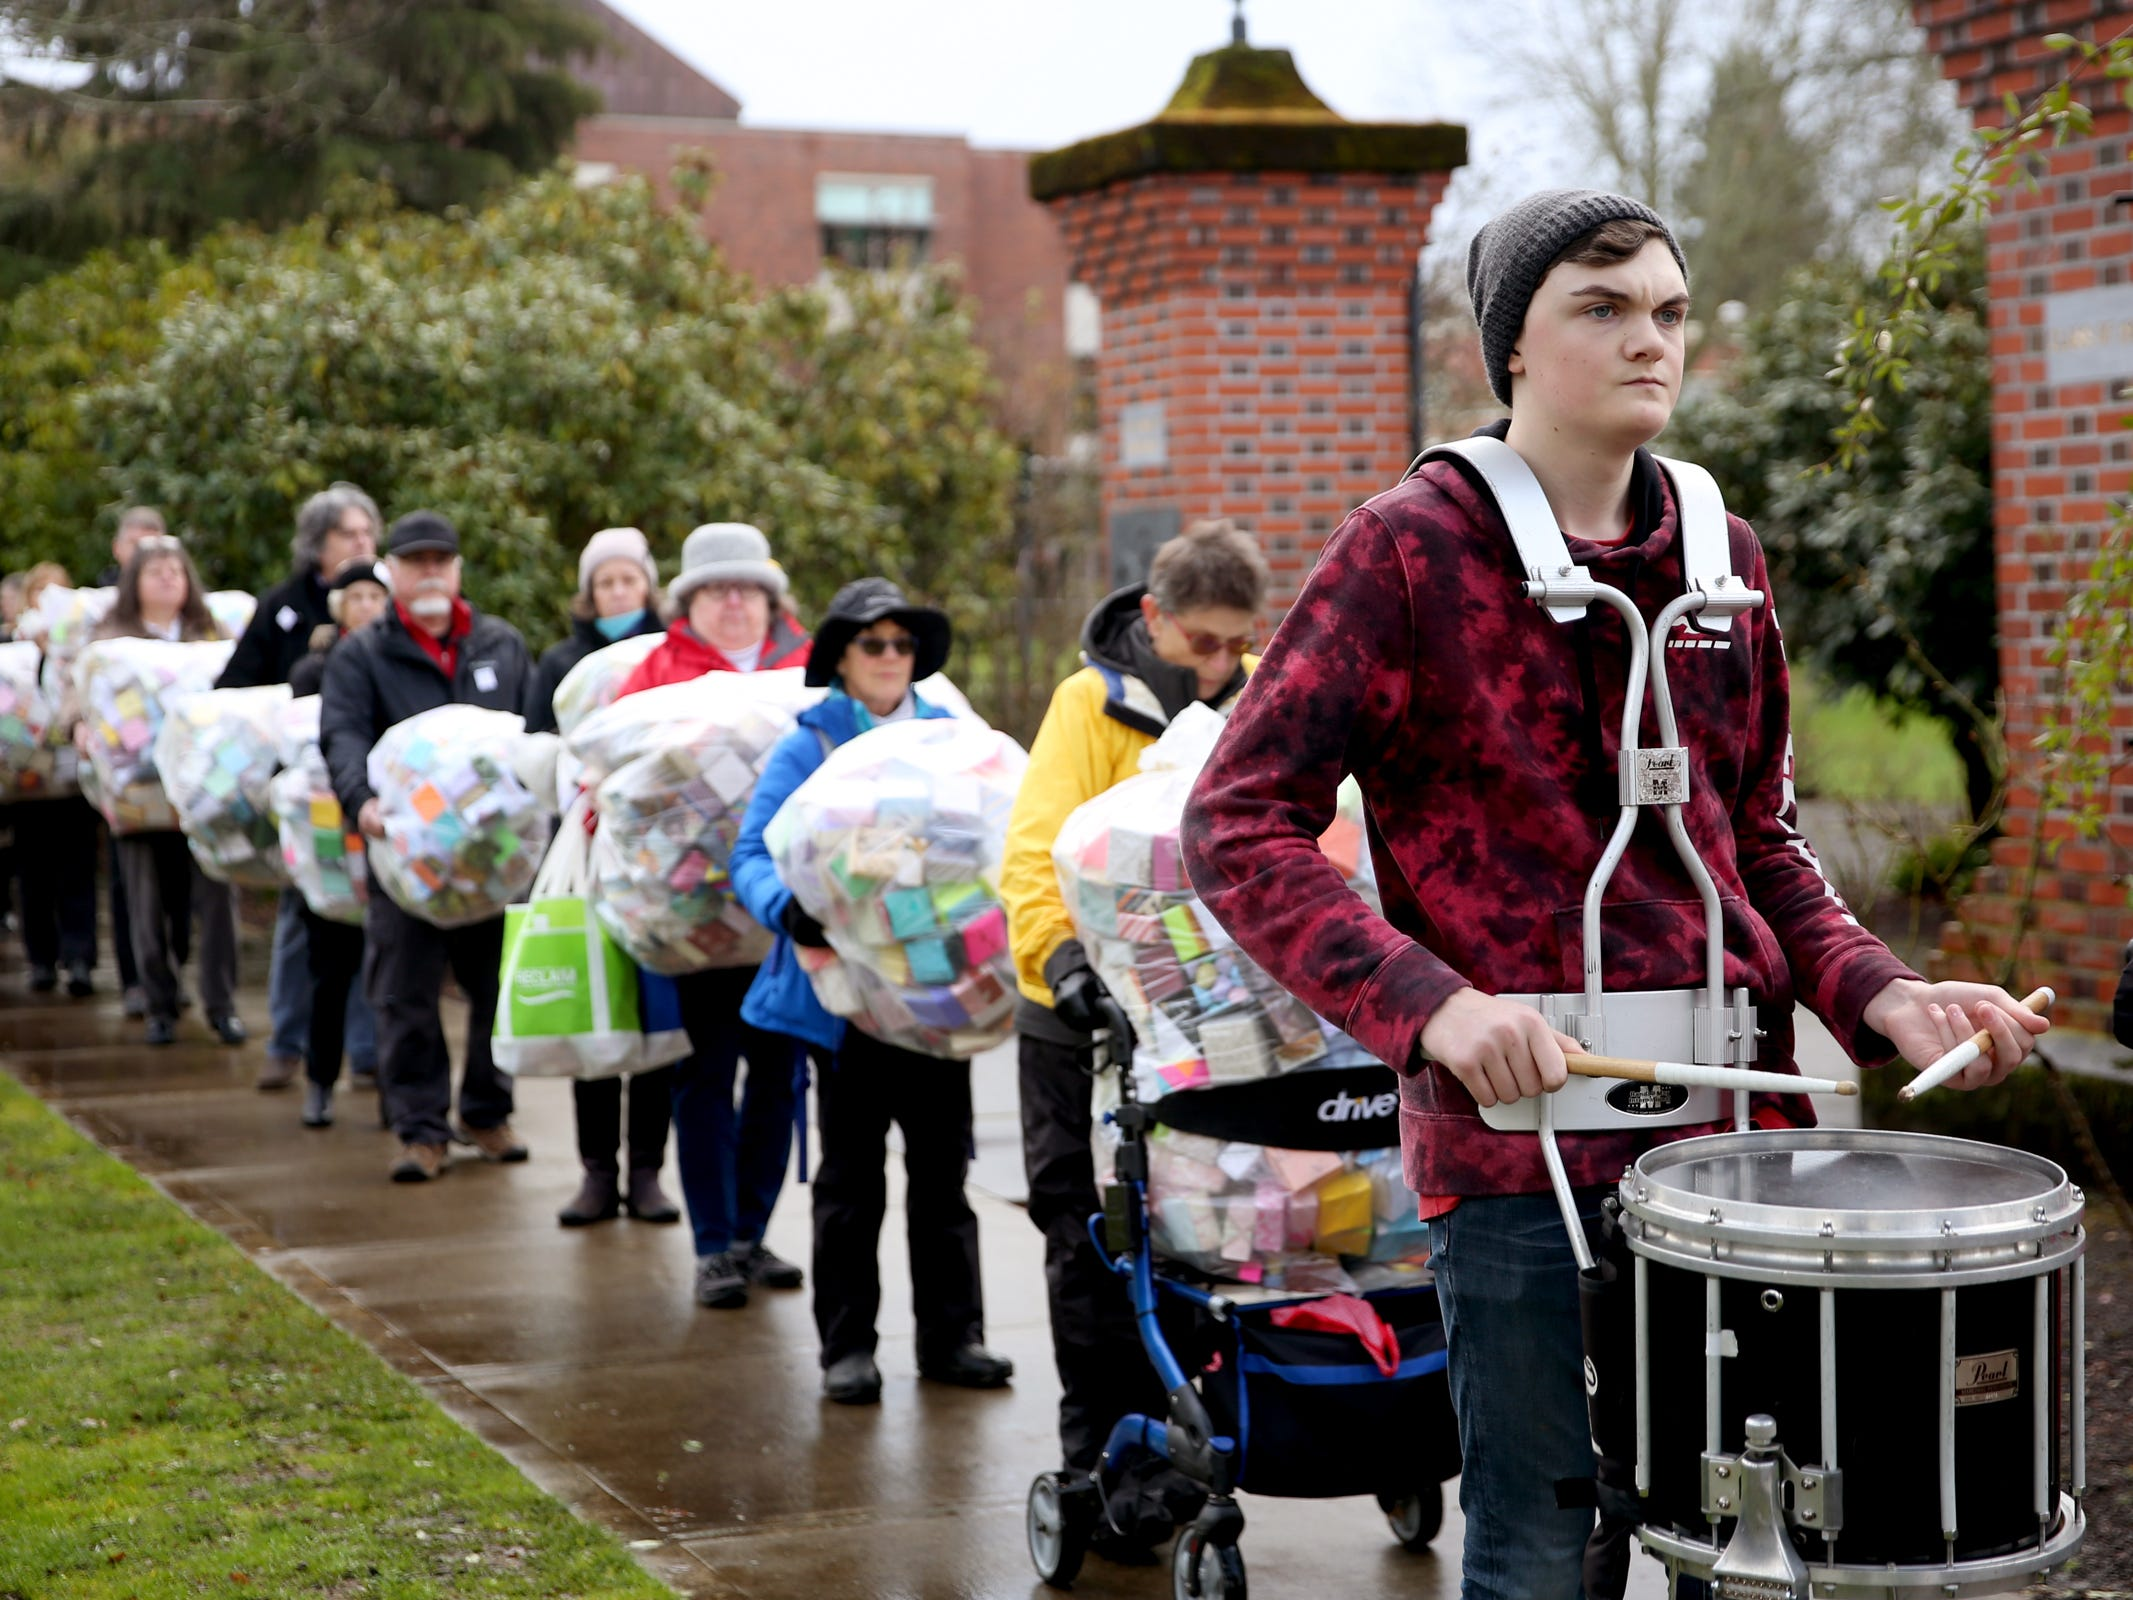 More than 100 people, led by drummer Tristan Kruger, deliver and display more than 37,000 handmade origami boxes, representing victims of gun violence, at the Oregon State Capitol in Salem on Friday, Feb. 15, 2019. The Soul Box Project, started by Portland artist Leslie Lee, aims to reveal the enormity of the gun fire epidemic.